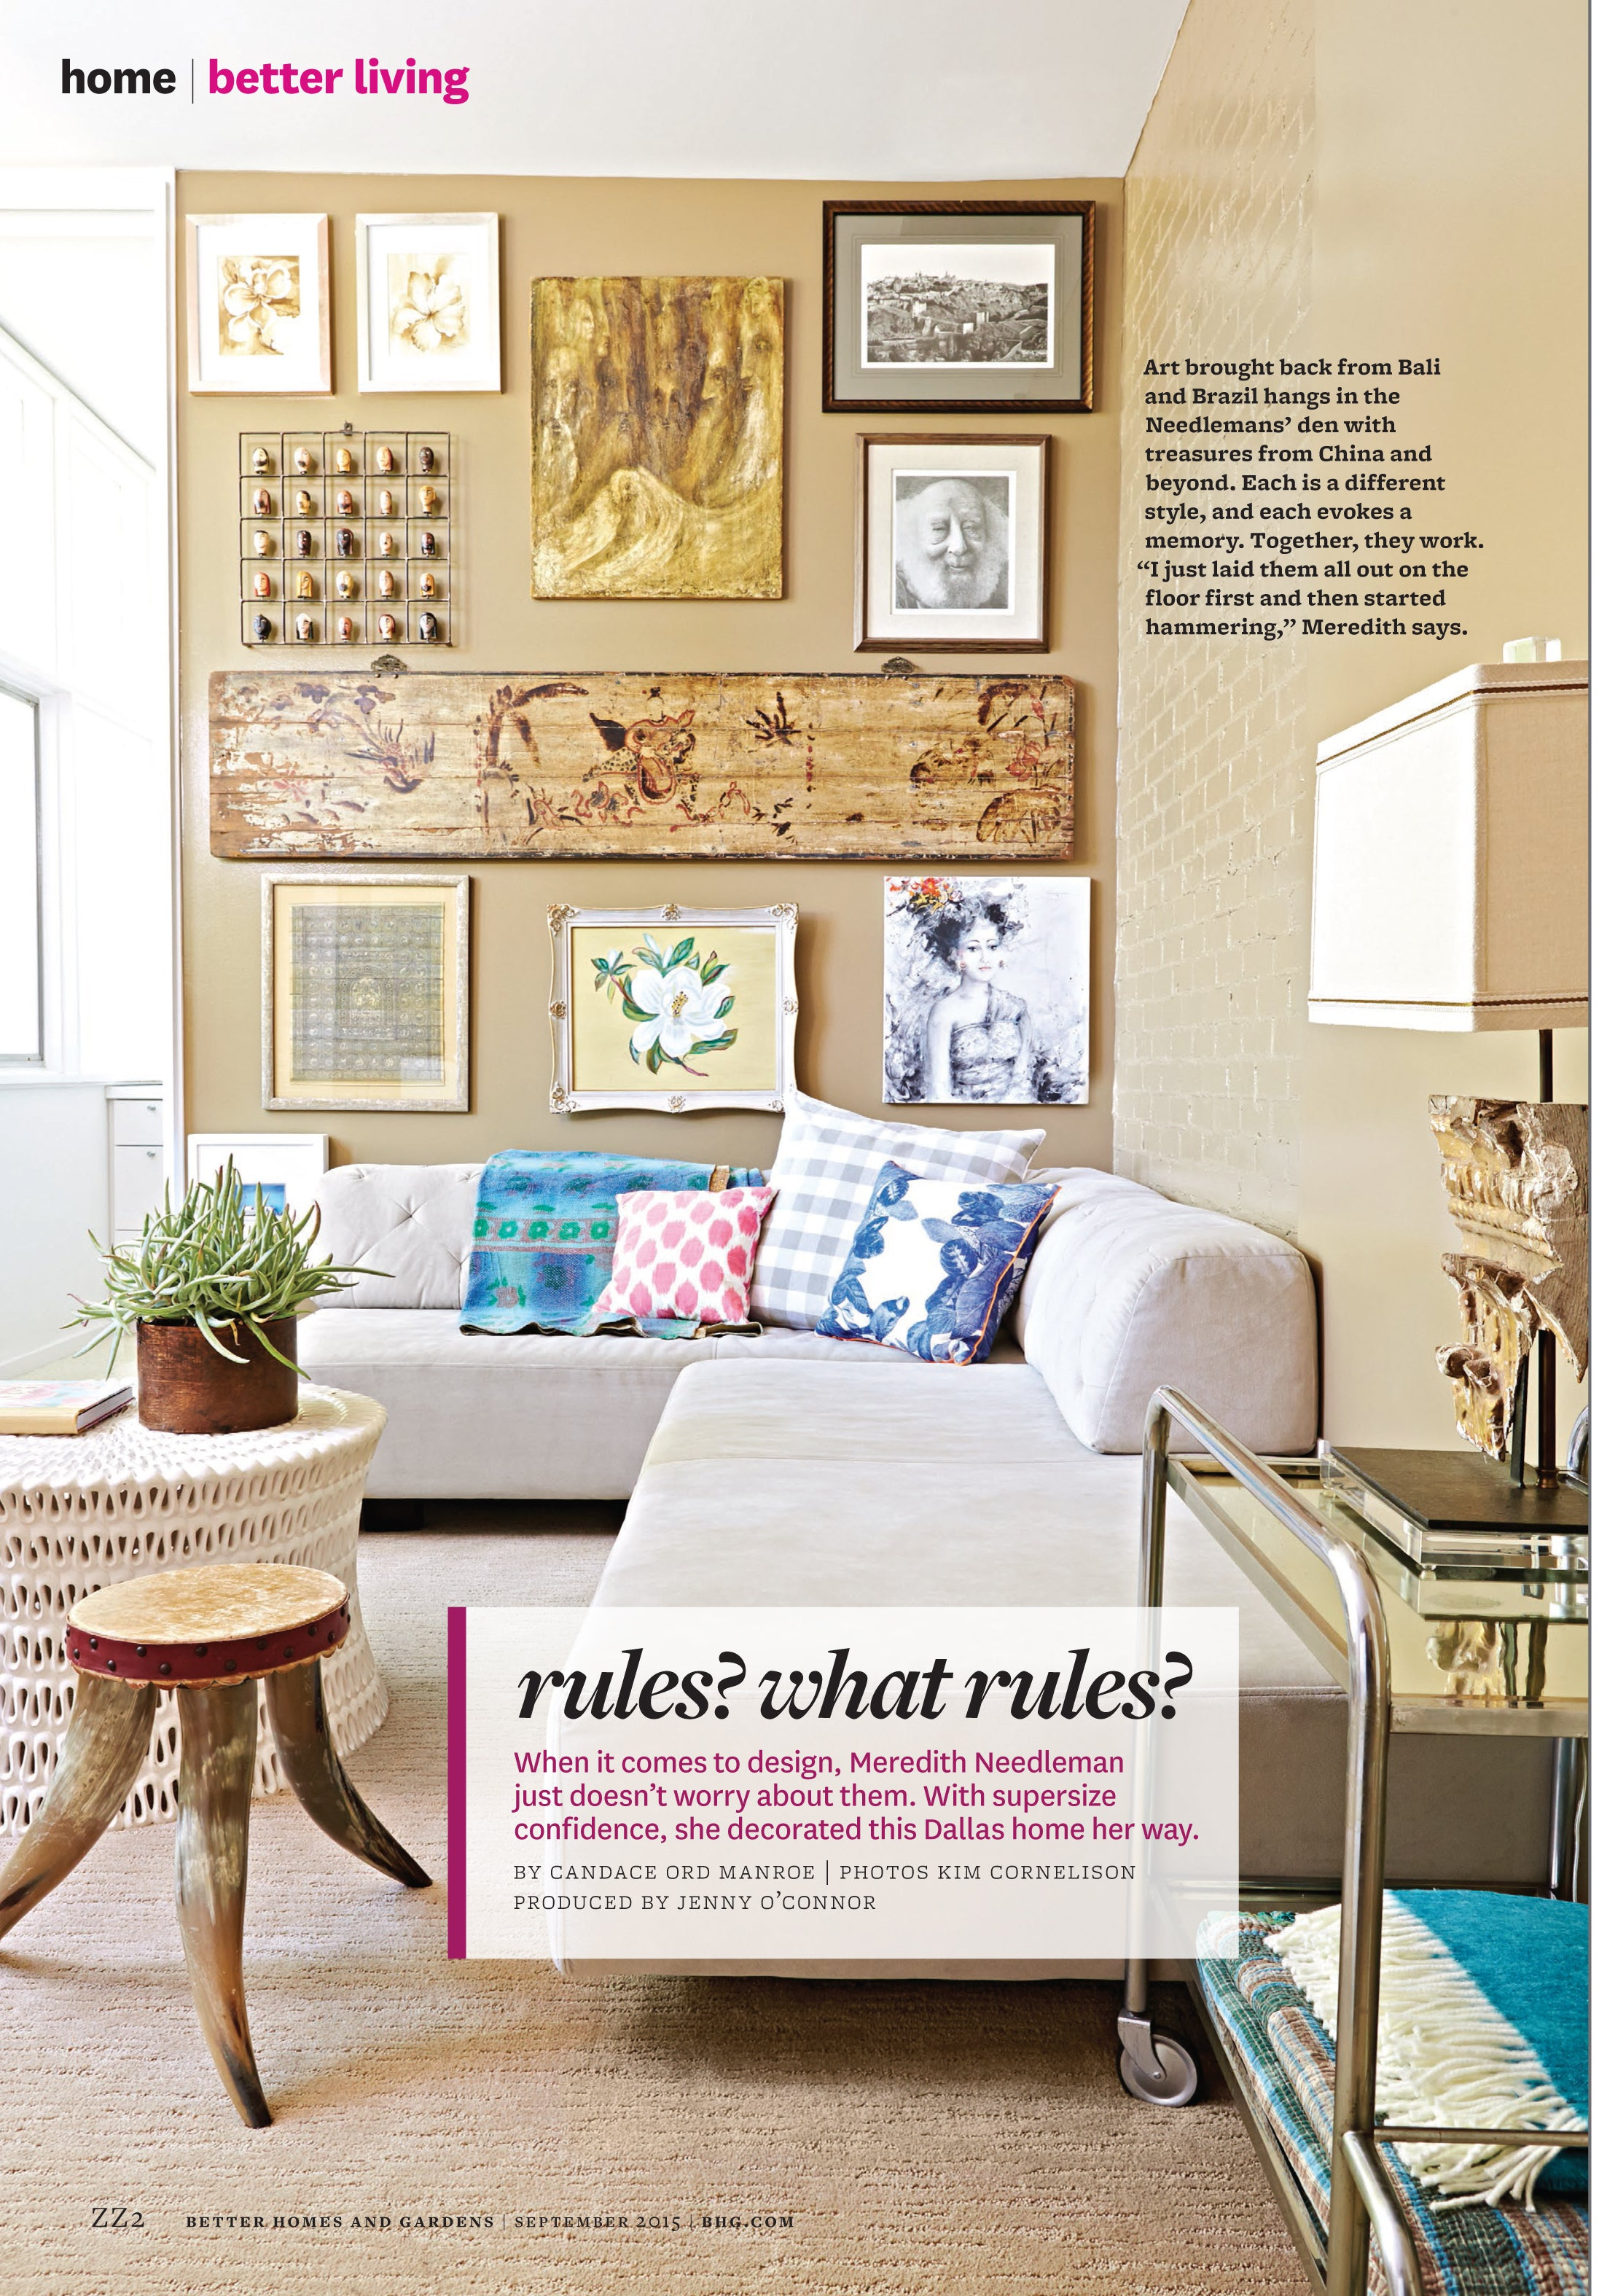 First page of Better Homes and Gardens article, collection of art and home decor items from around the world displayed in the Needleman home